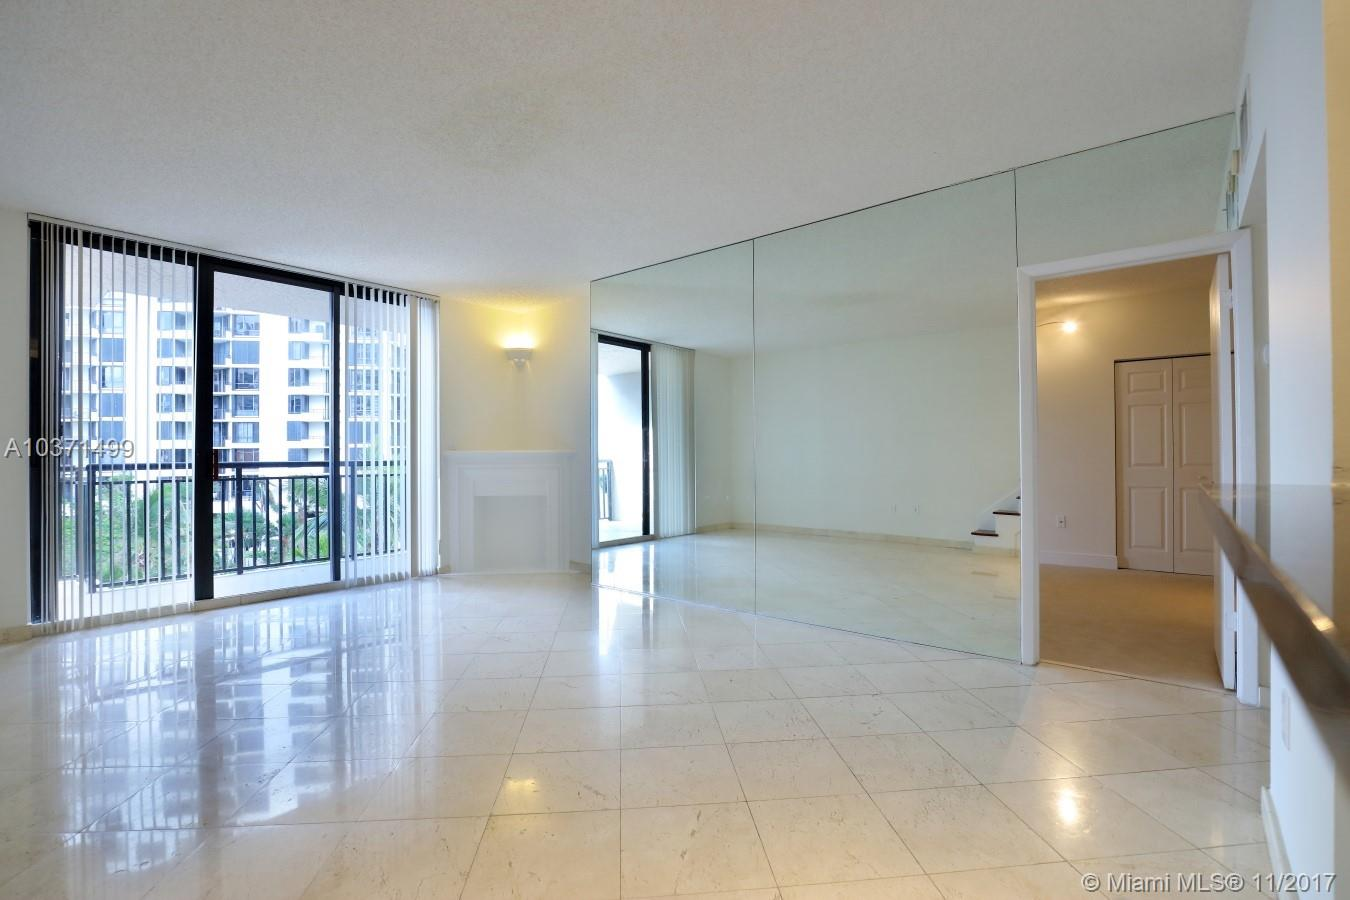 540 SE Brickell Key Dr # 605, Miami , FL 33131